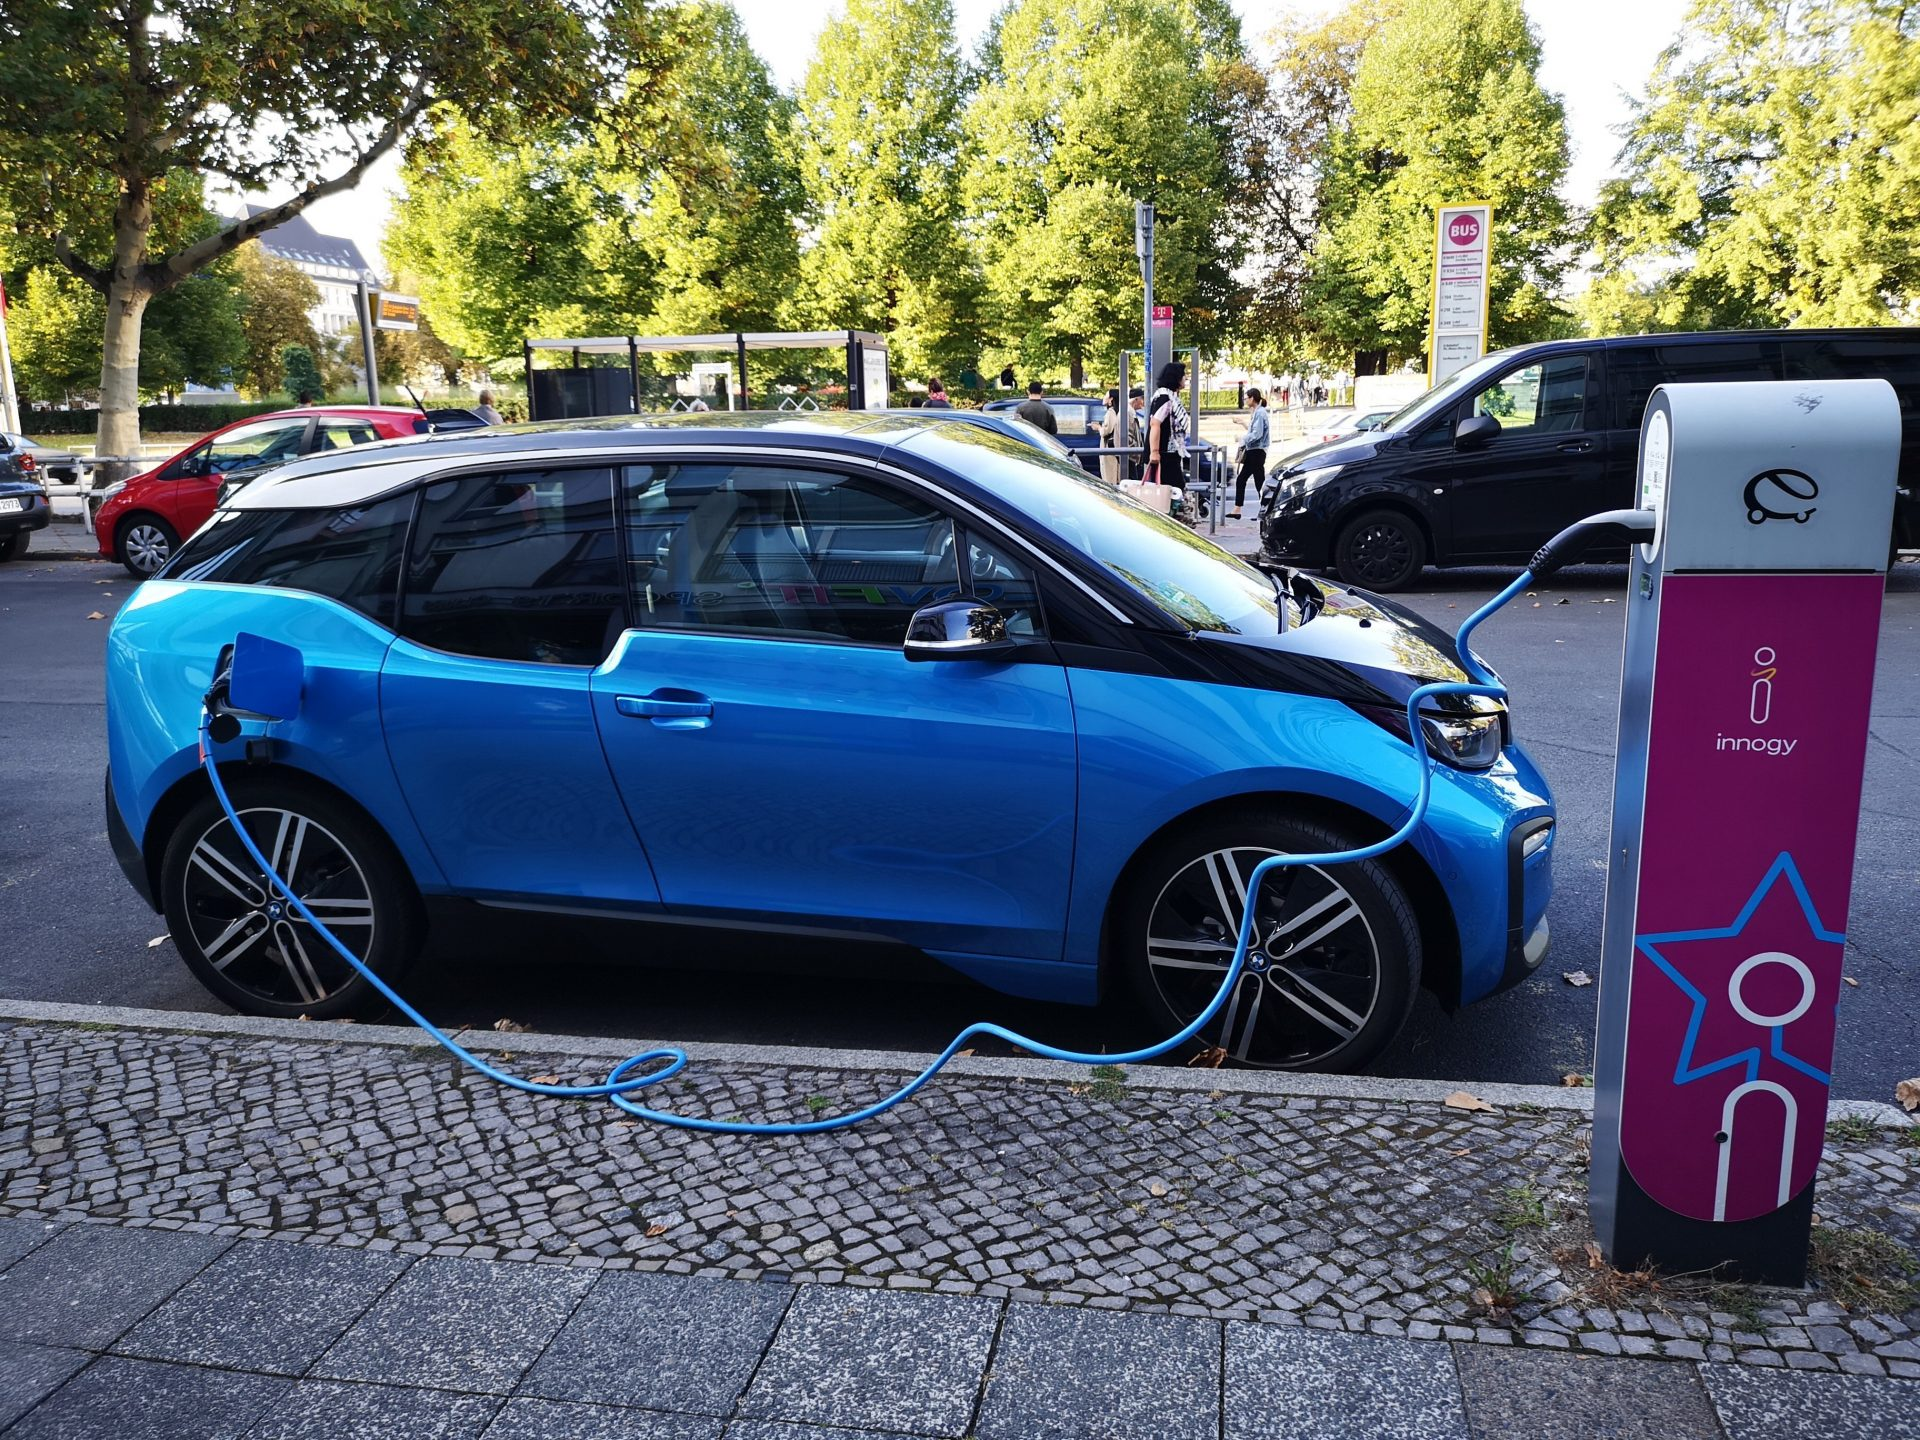 Bmw Posts Strong Growth In Q3 2019 Big Plans For Ev Av And Shared Mobility Counterpoint Research